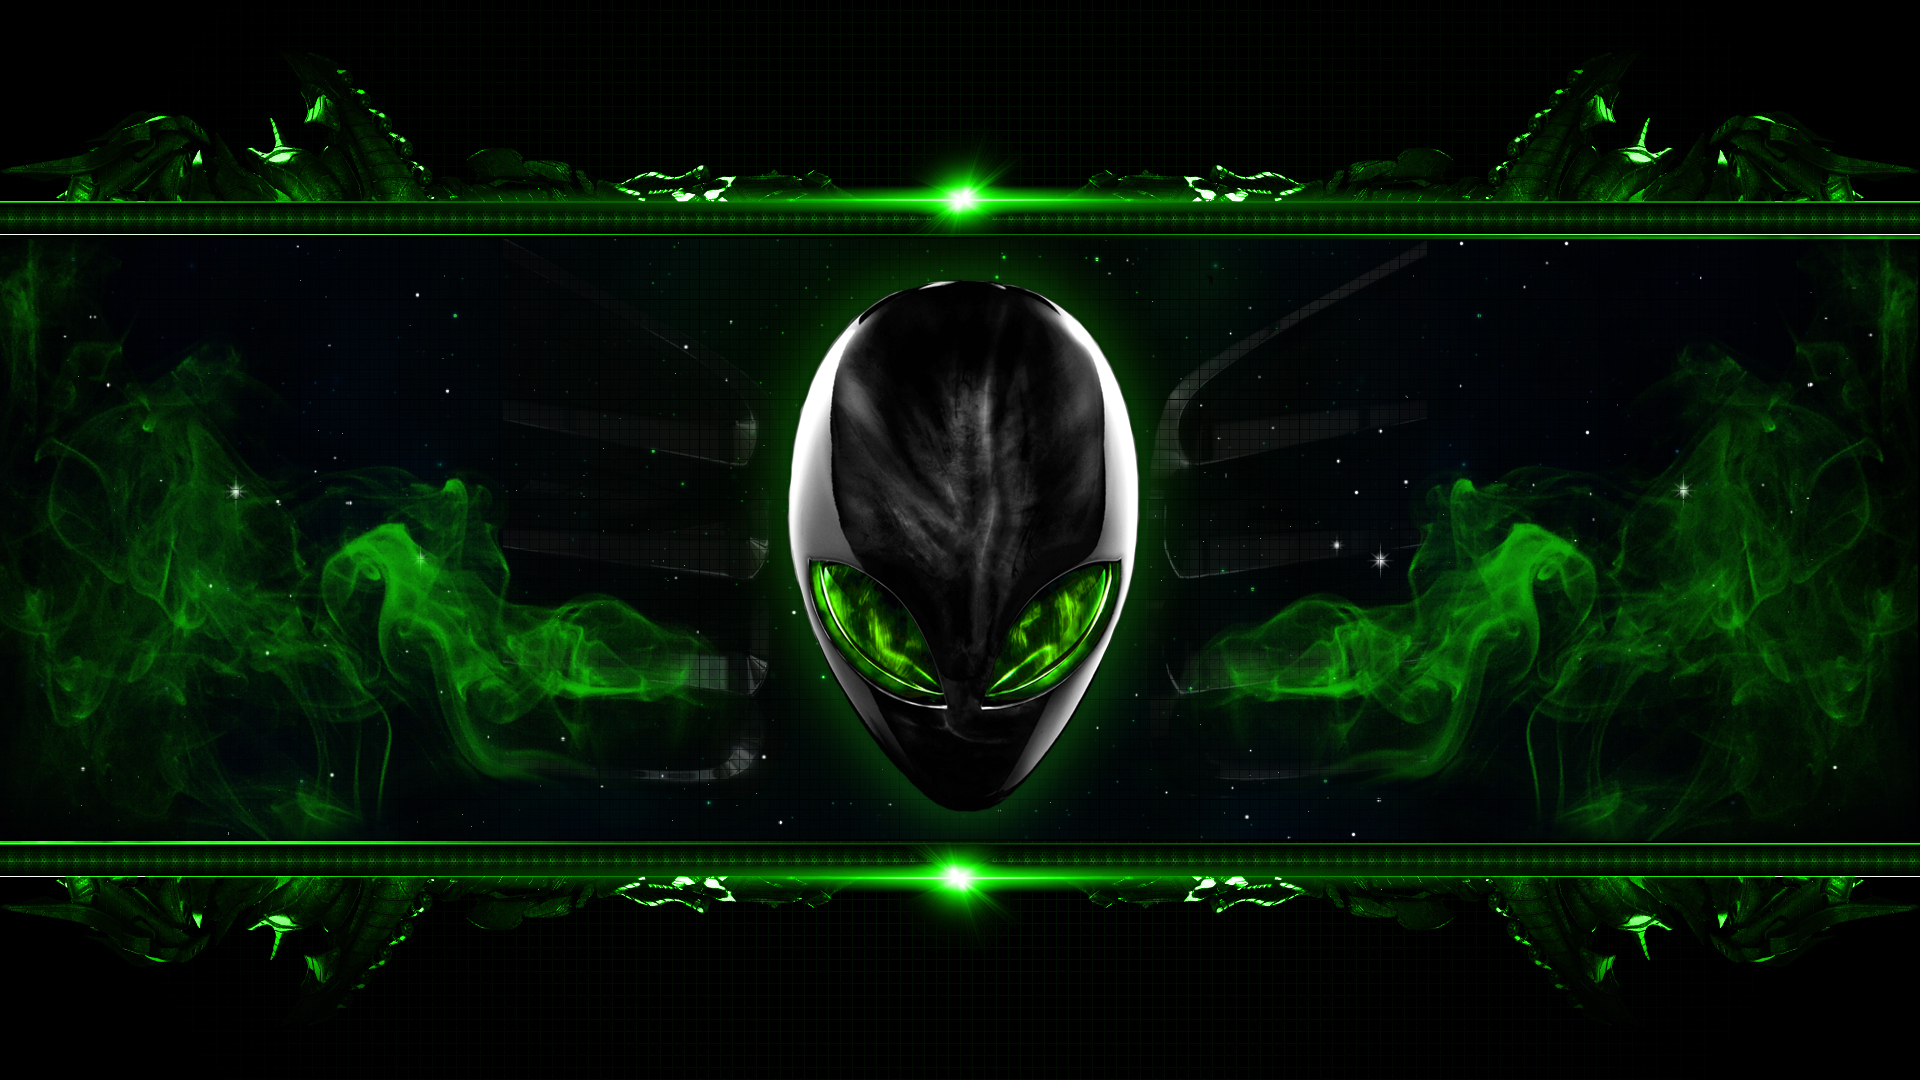 Alienware Computer Wallpapers Desktop Backgrounds 1920x1080 ID 1920x1080